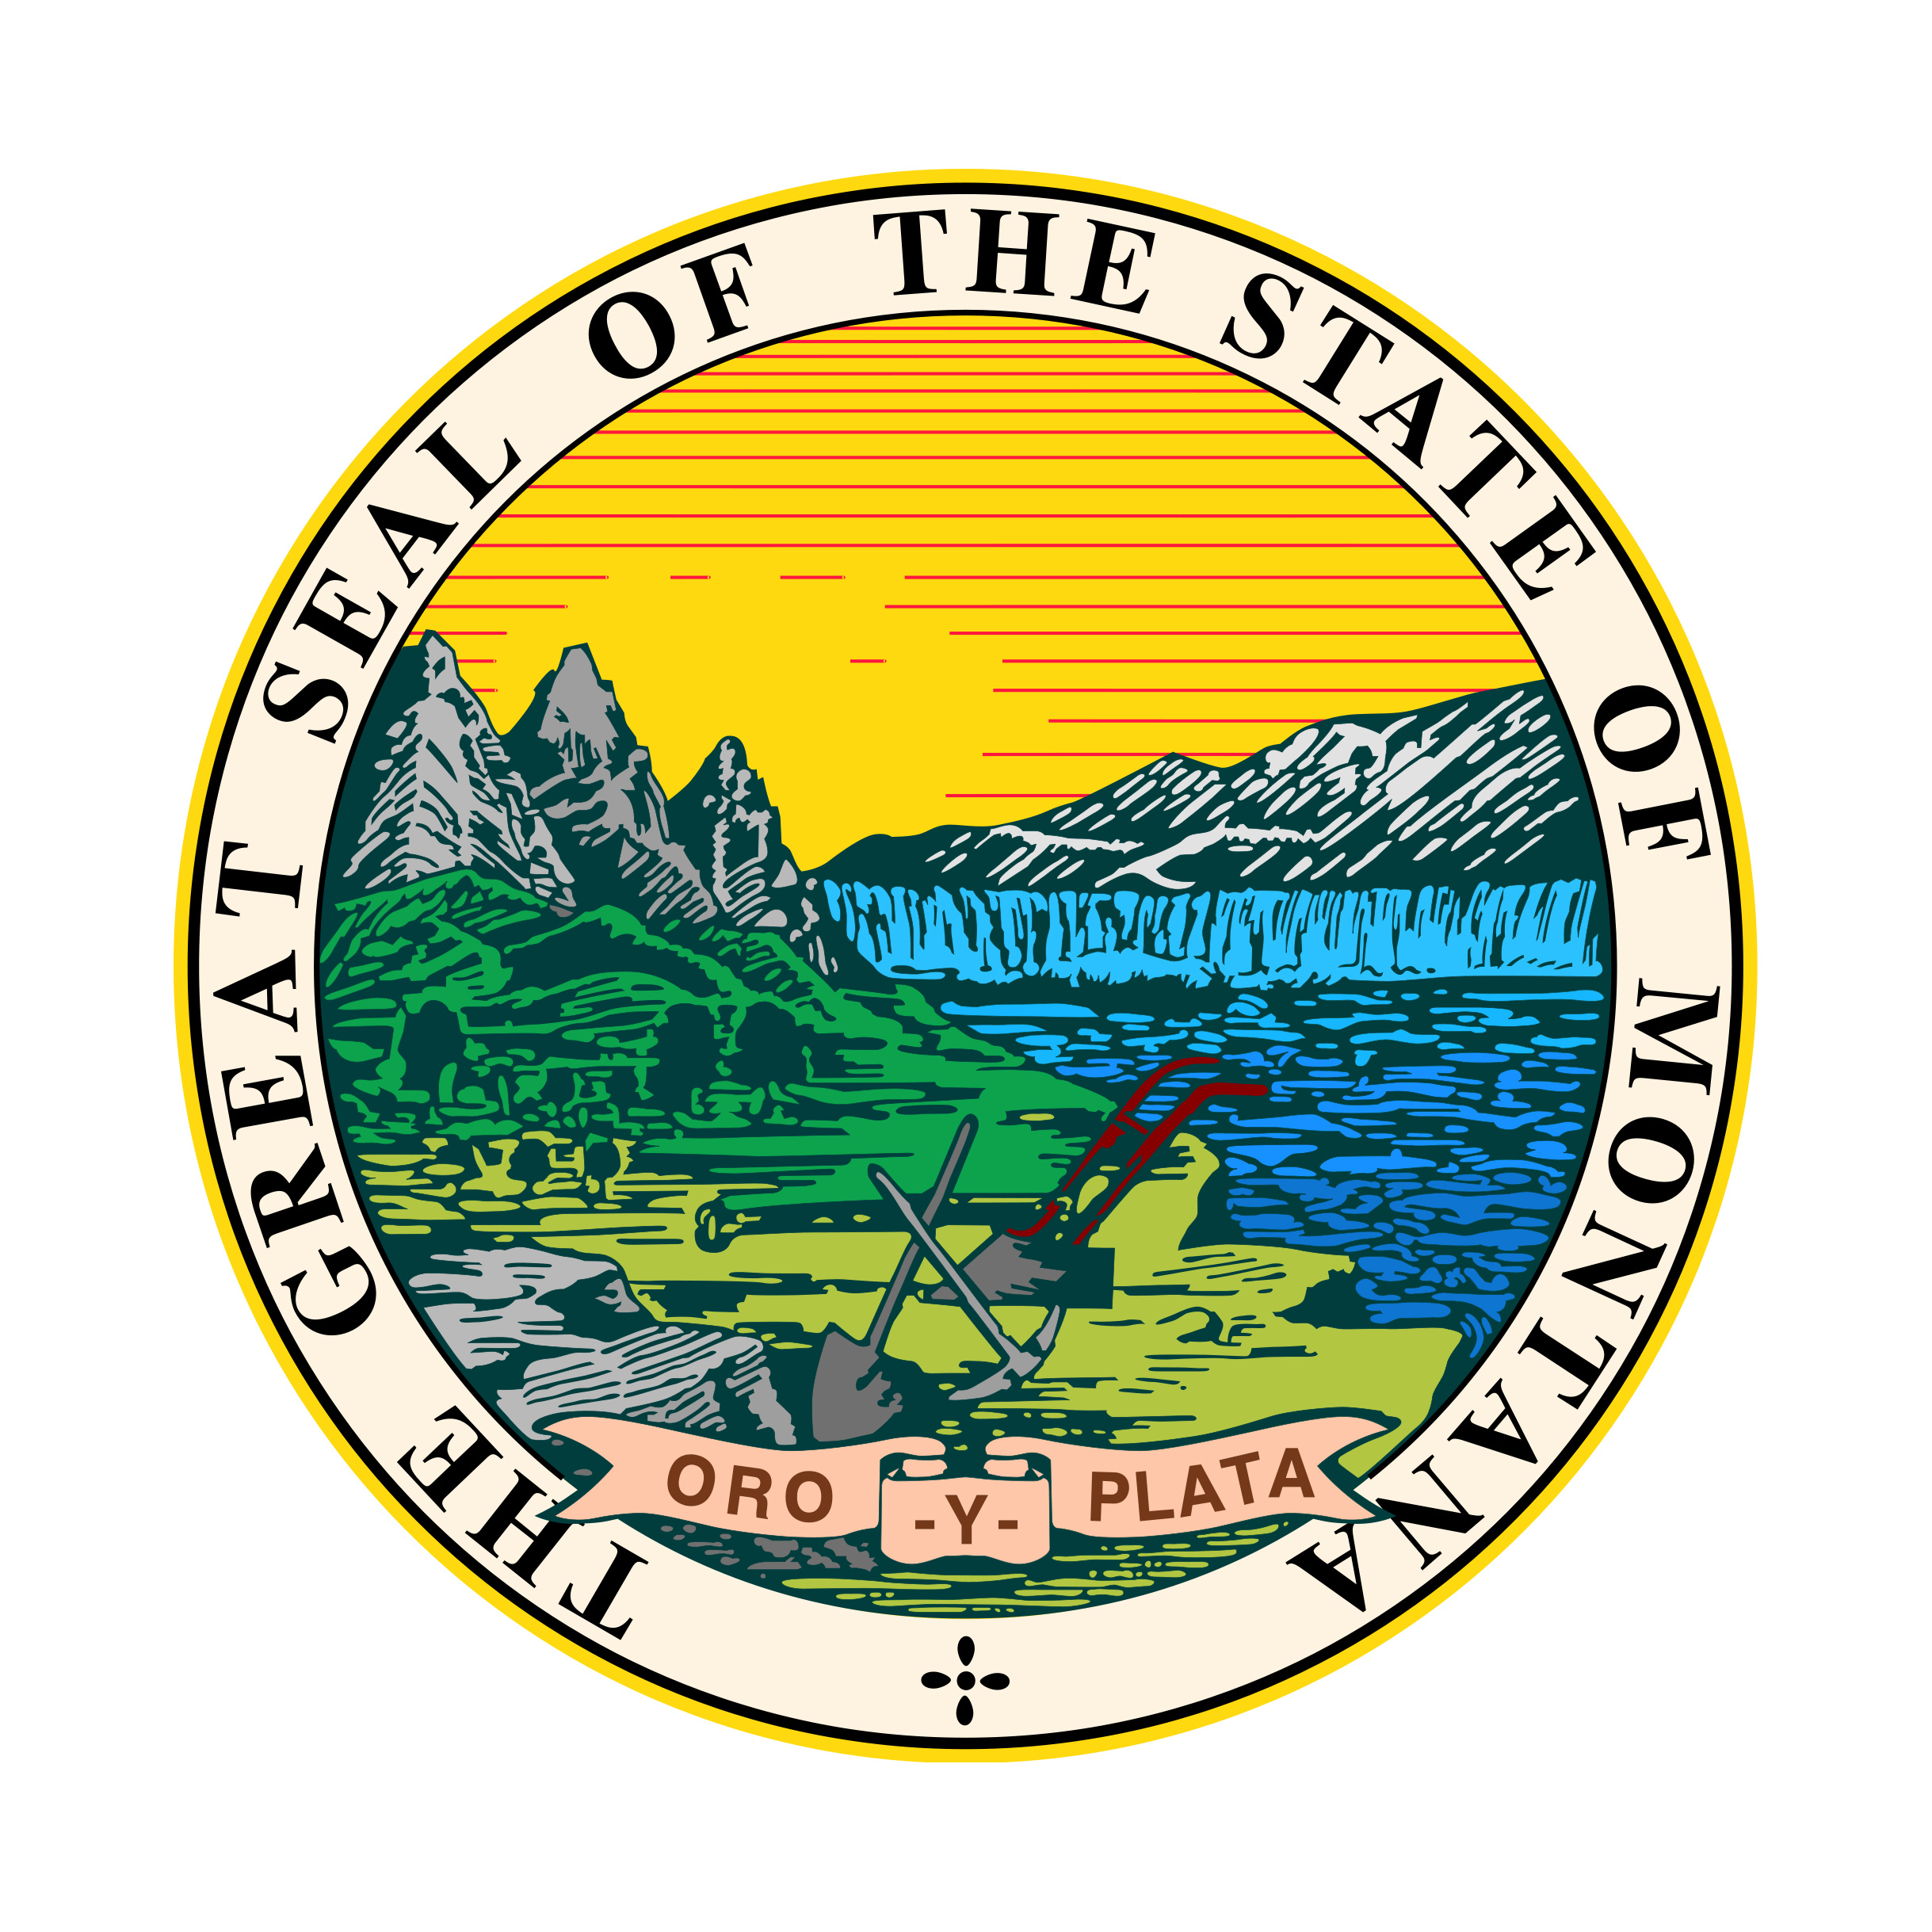 Effective June 1st, 2020: The New Montana Business Corporation Act